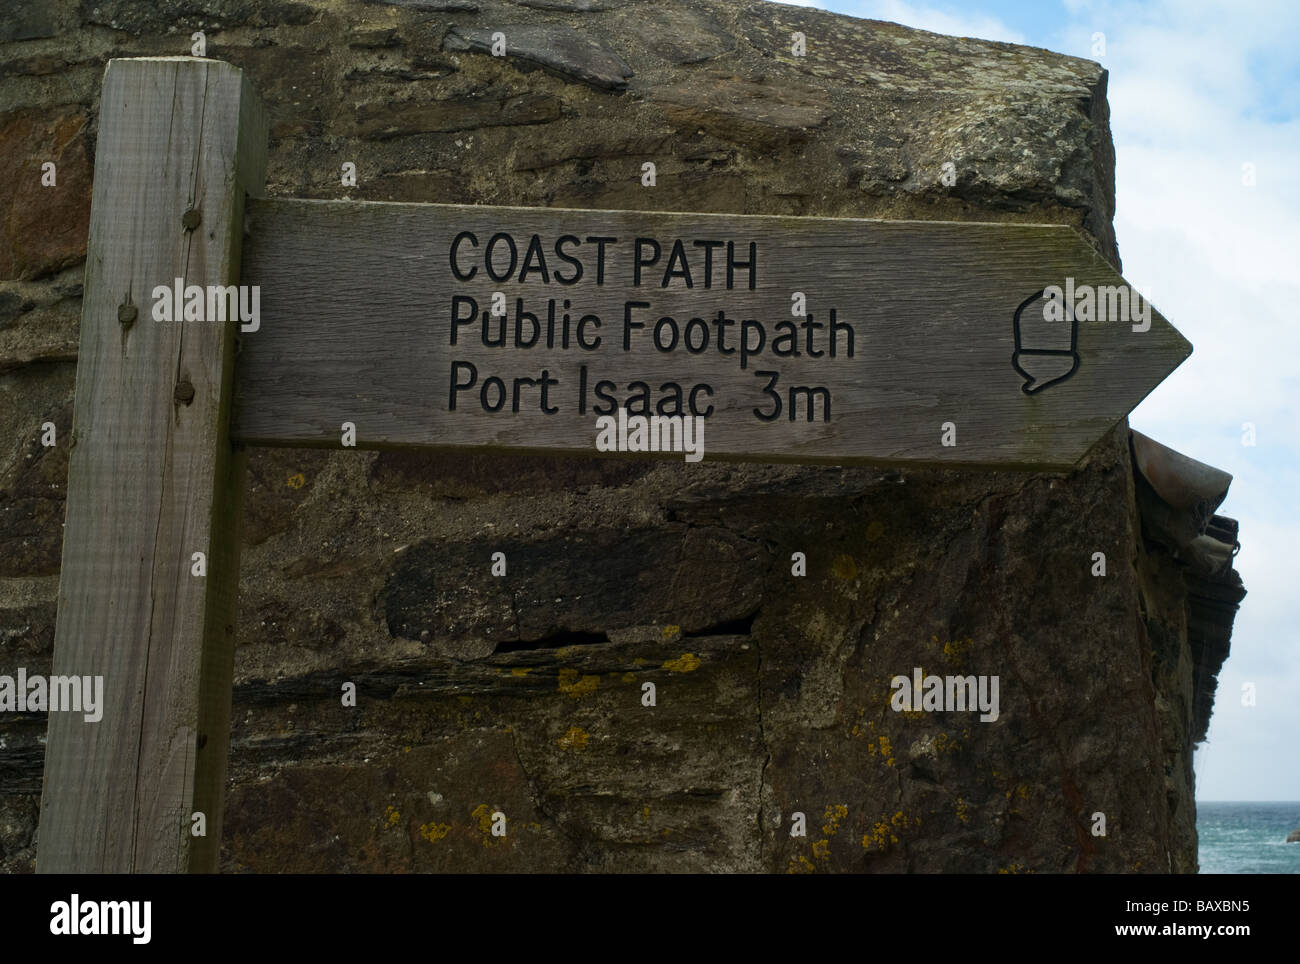 Signpost for the South-West Coast Path at Port Quin, Cornwall - Stock Image